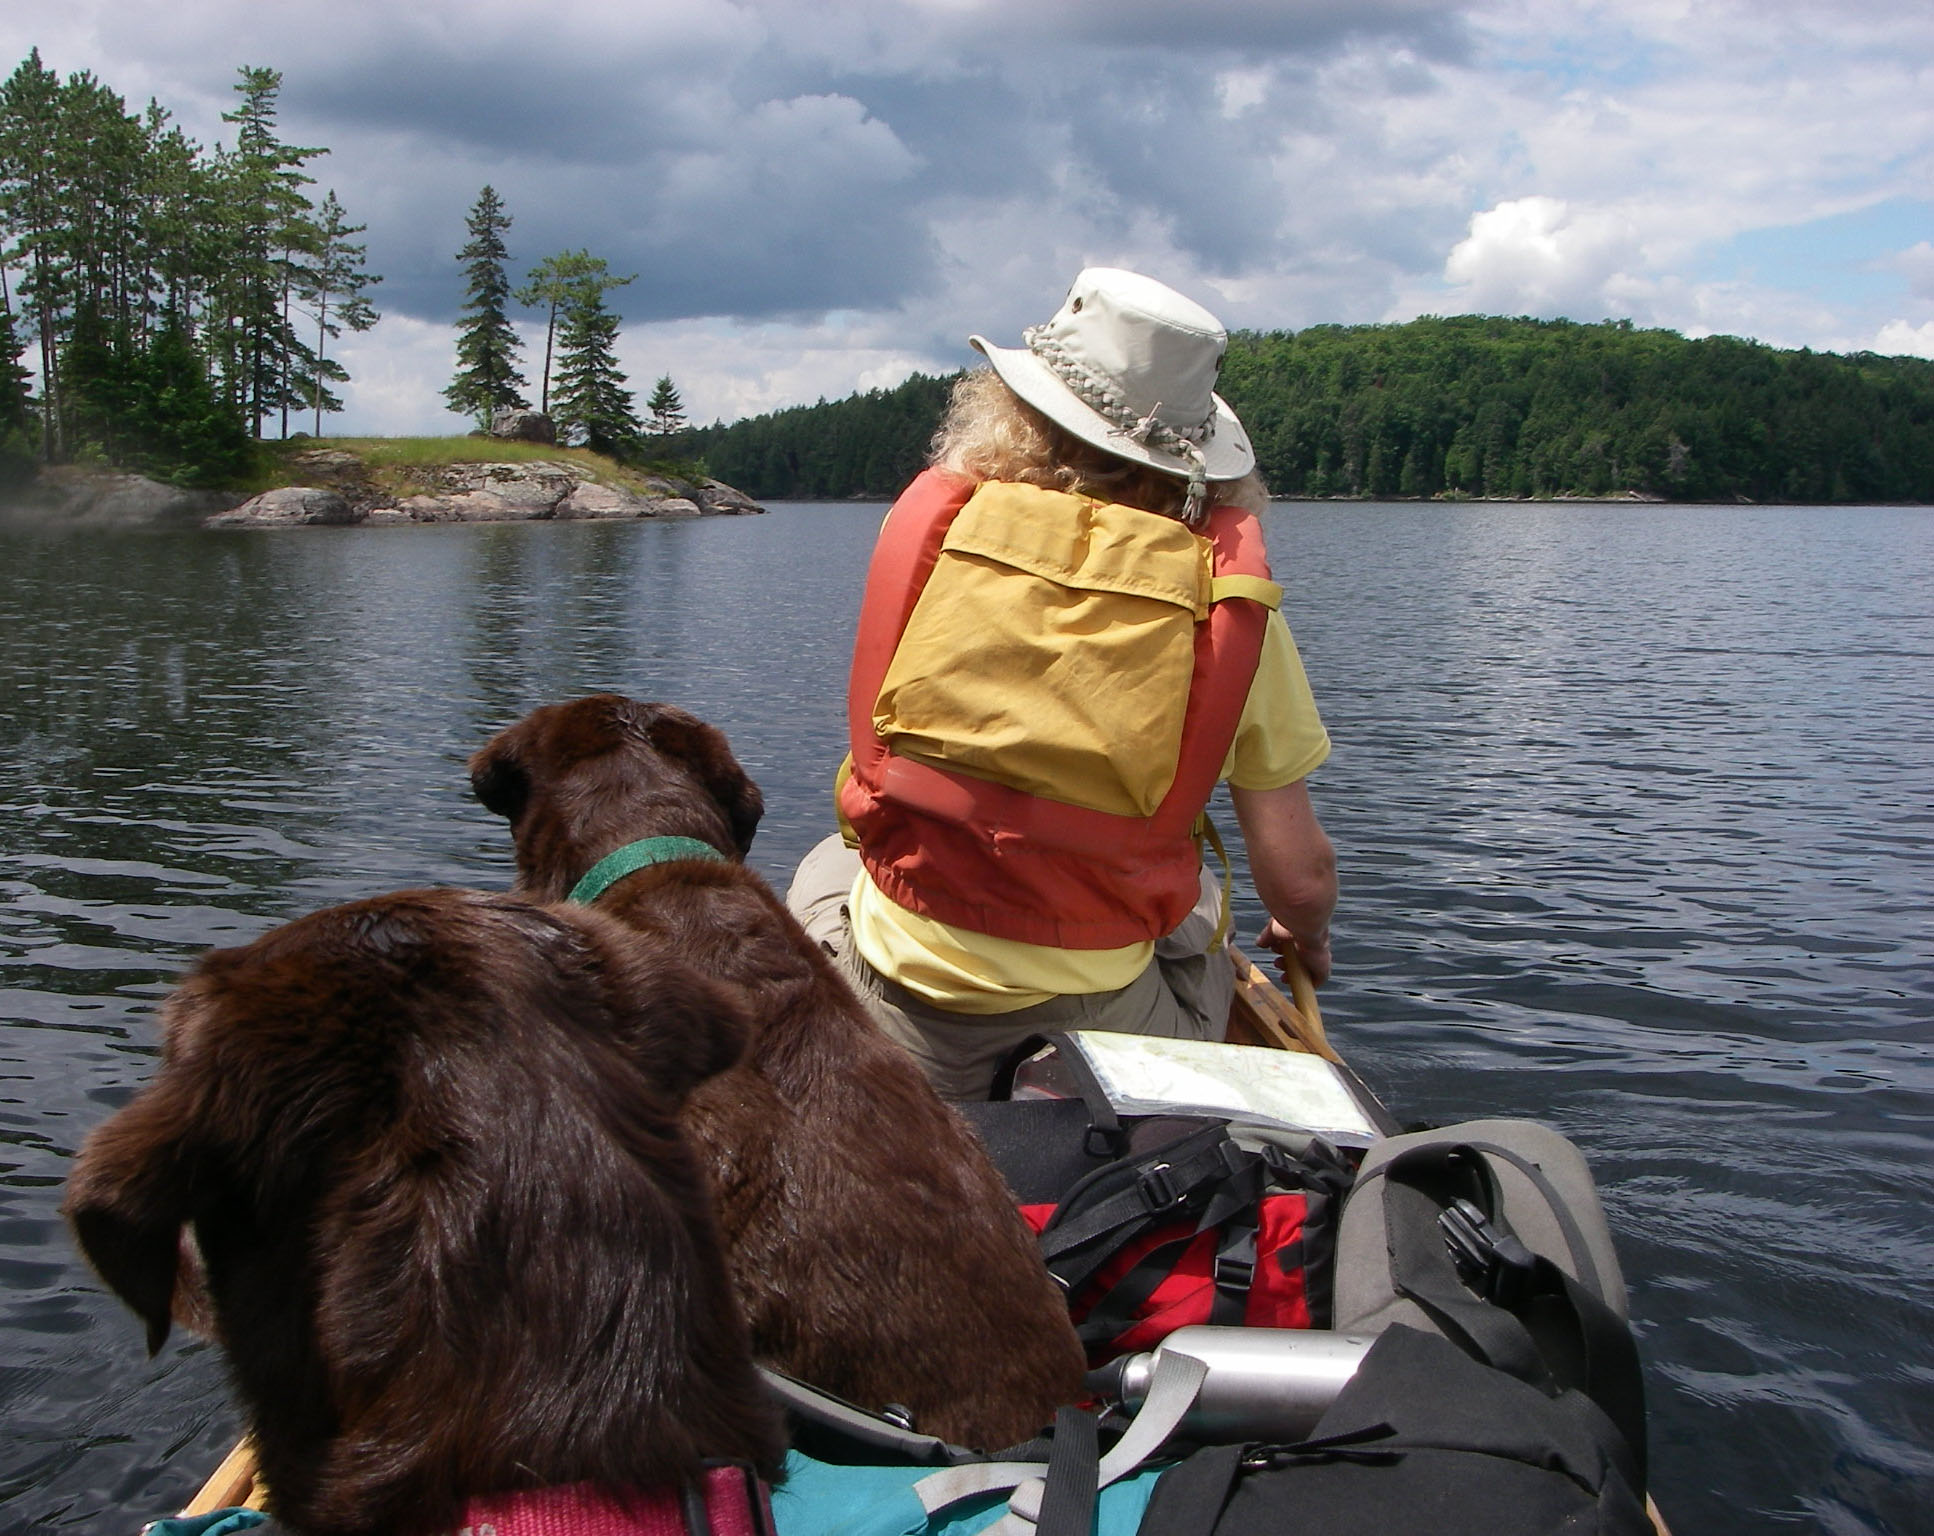 dogs and woman paddling on the water